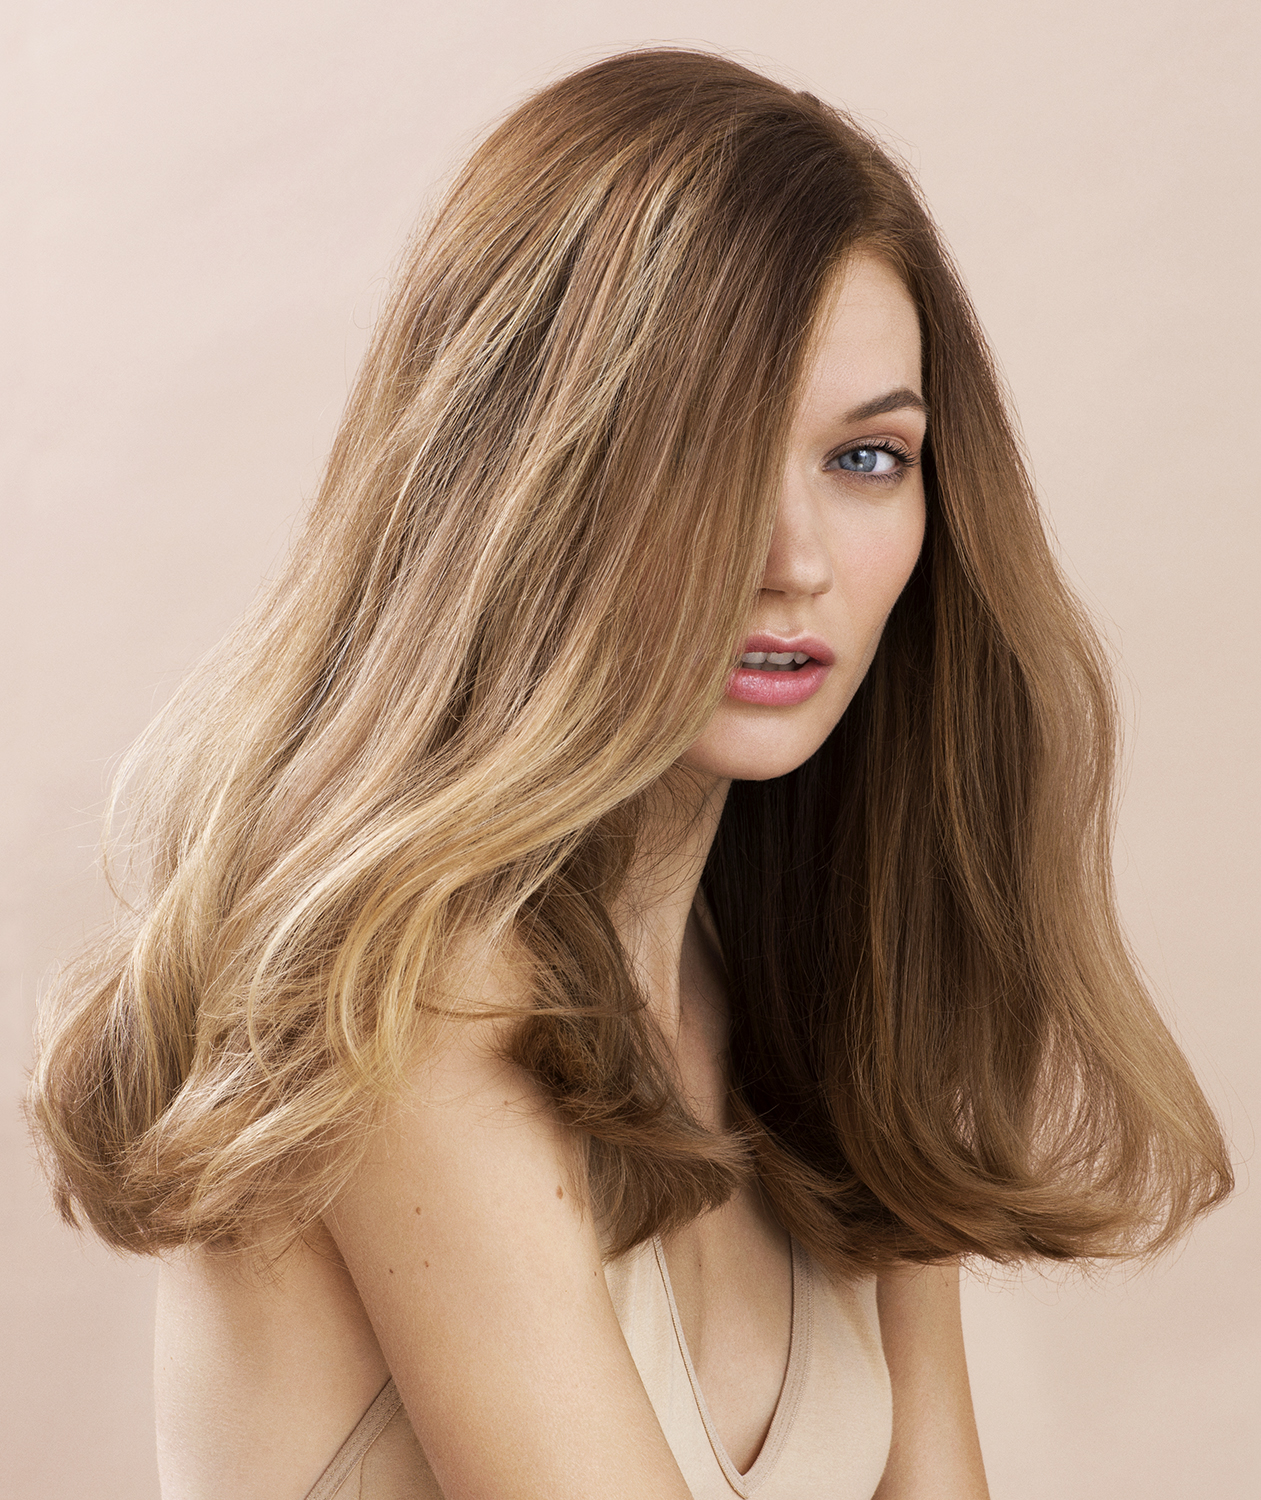 Model with thick dark blonde hair